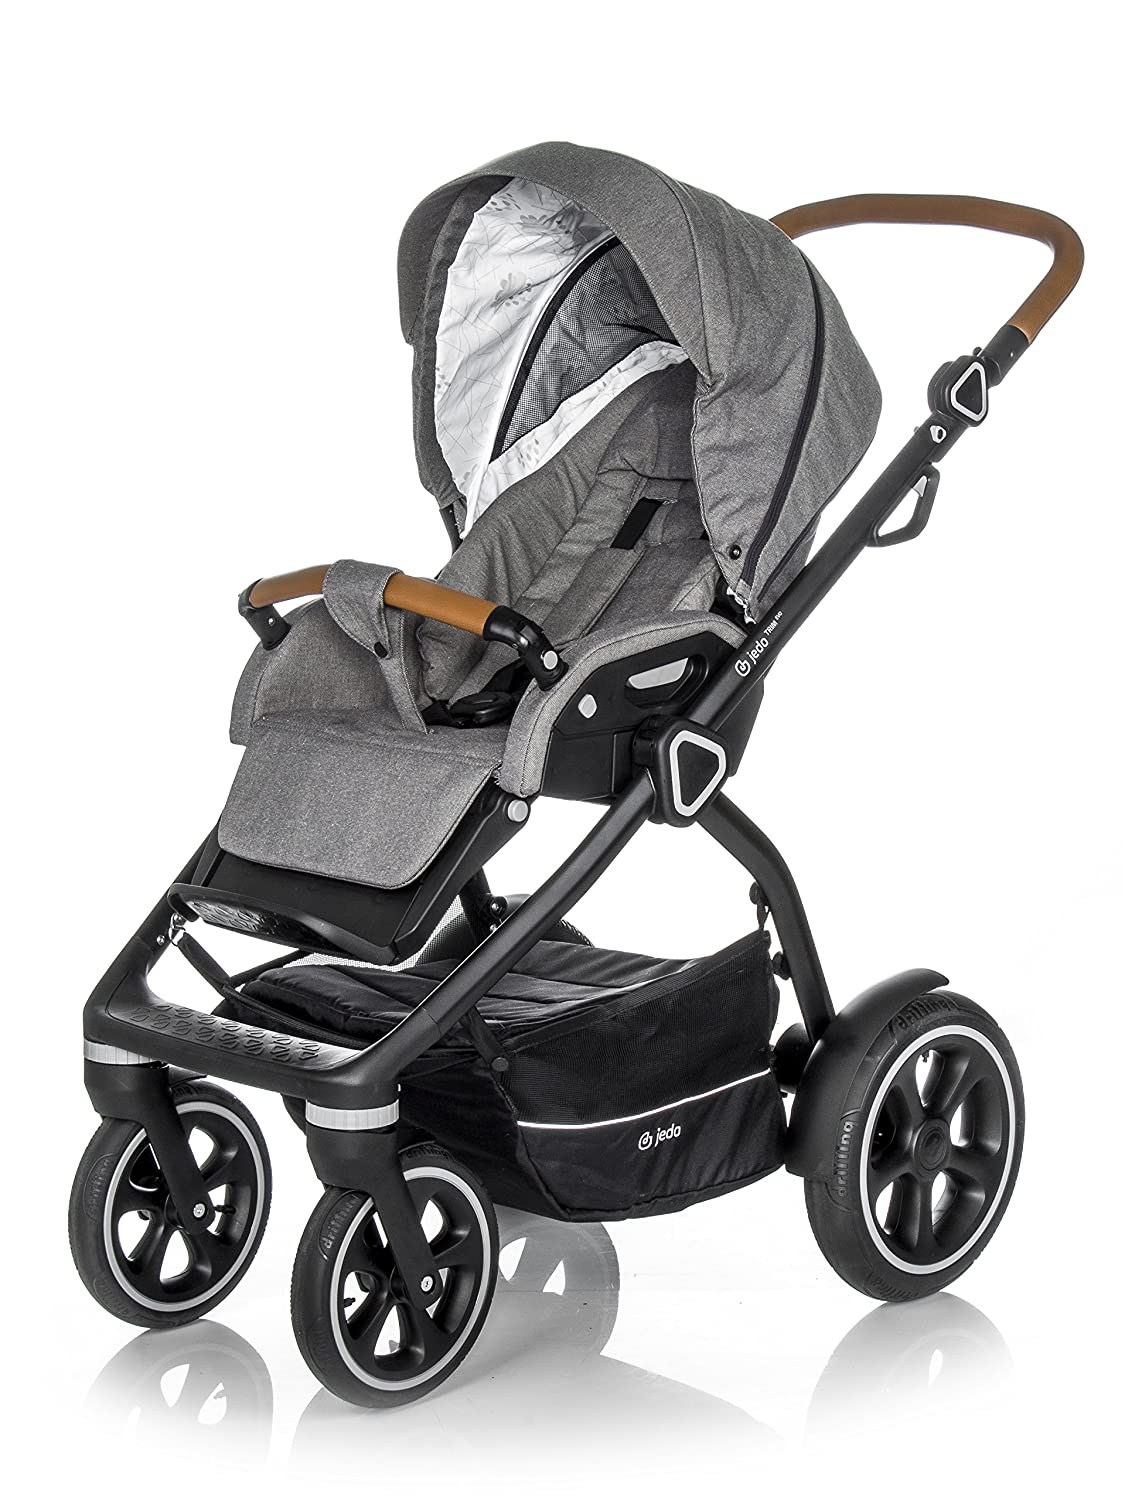 Baby stroller Jedo: photo and review of models, reviews 52